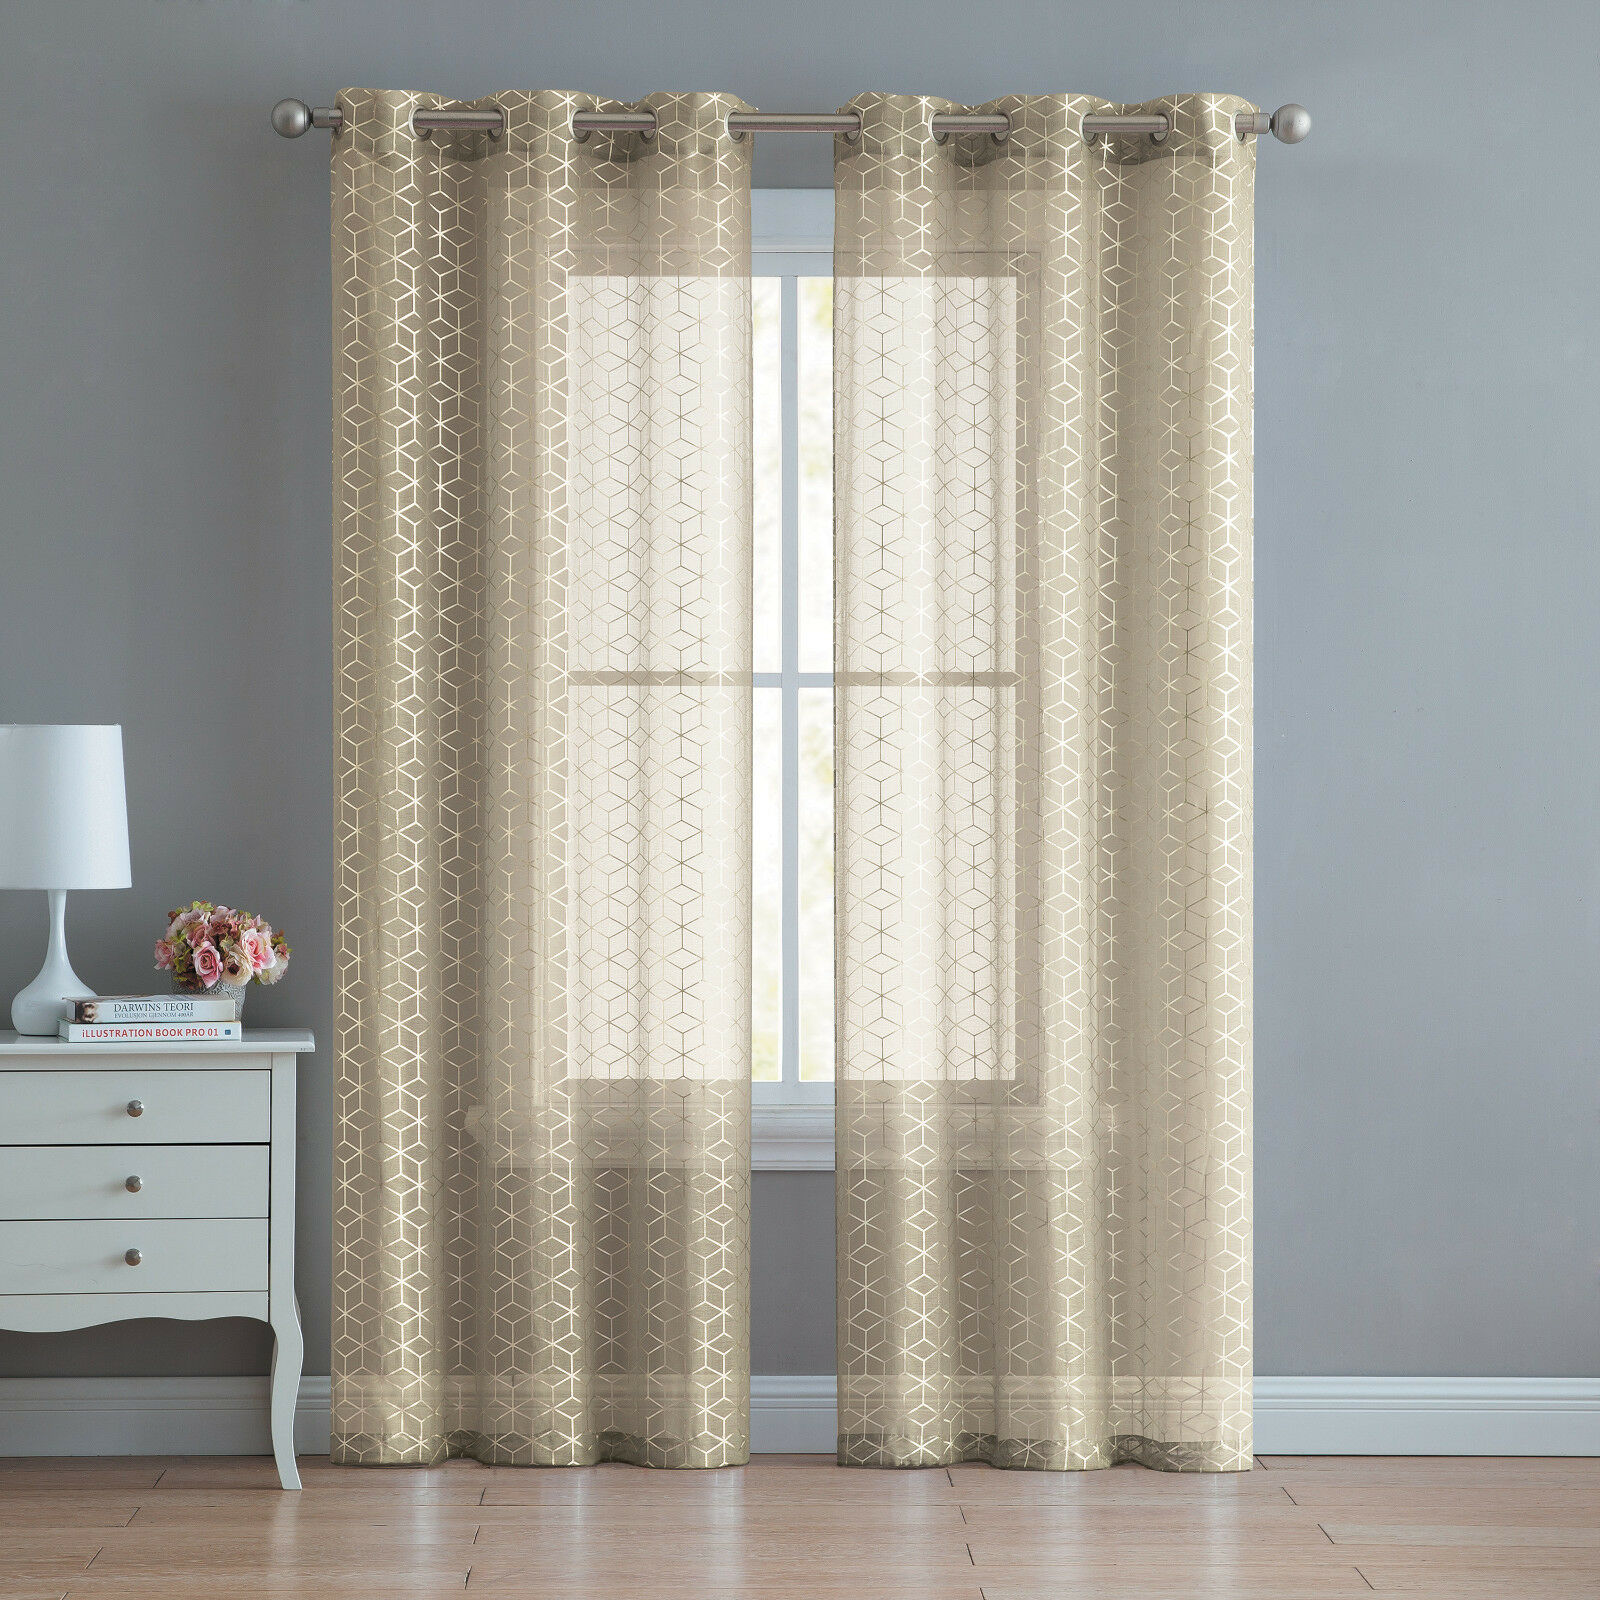 2 Pack: Metallic Geo Semi Sheer Grommet Window Curtain - Assorted Sizes & Colors